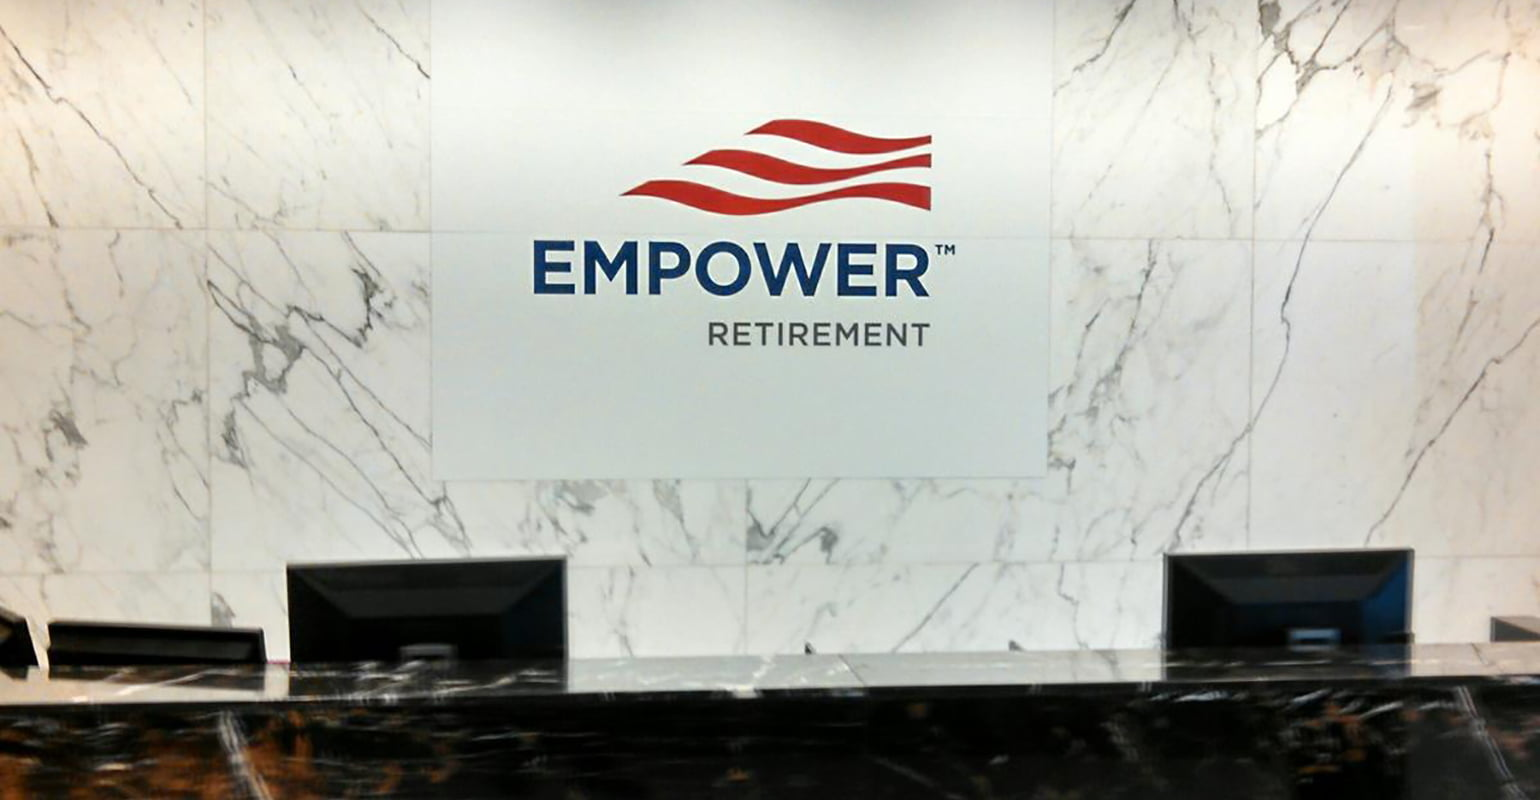 Empower Retirement Acquires Personal Capital in $1 Billion Deal